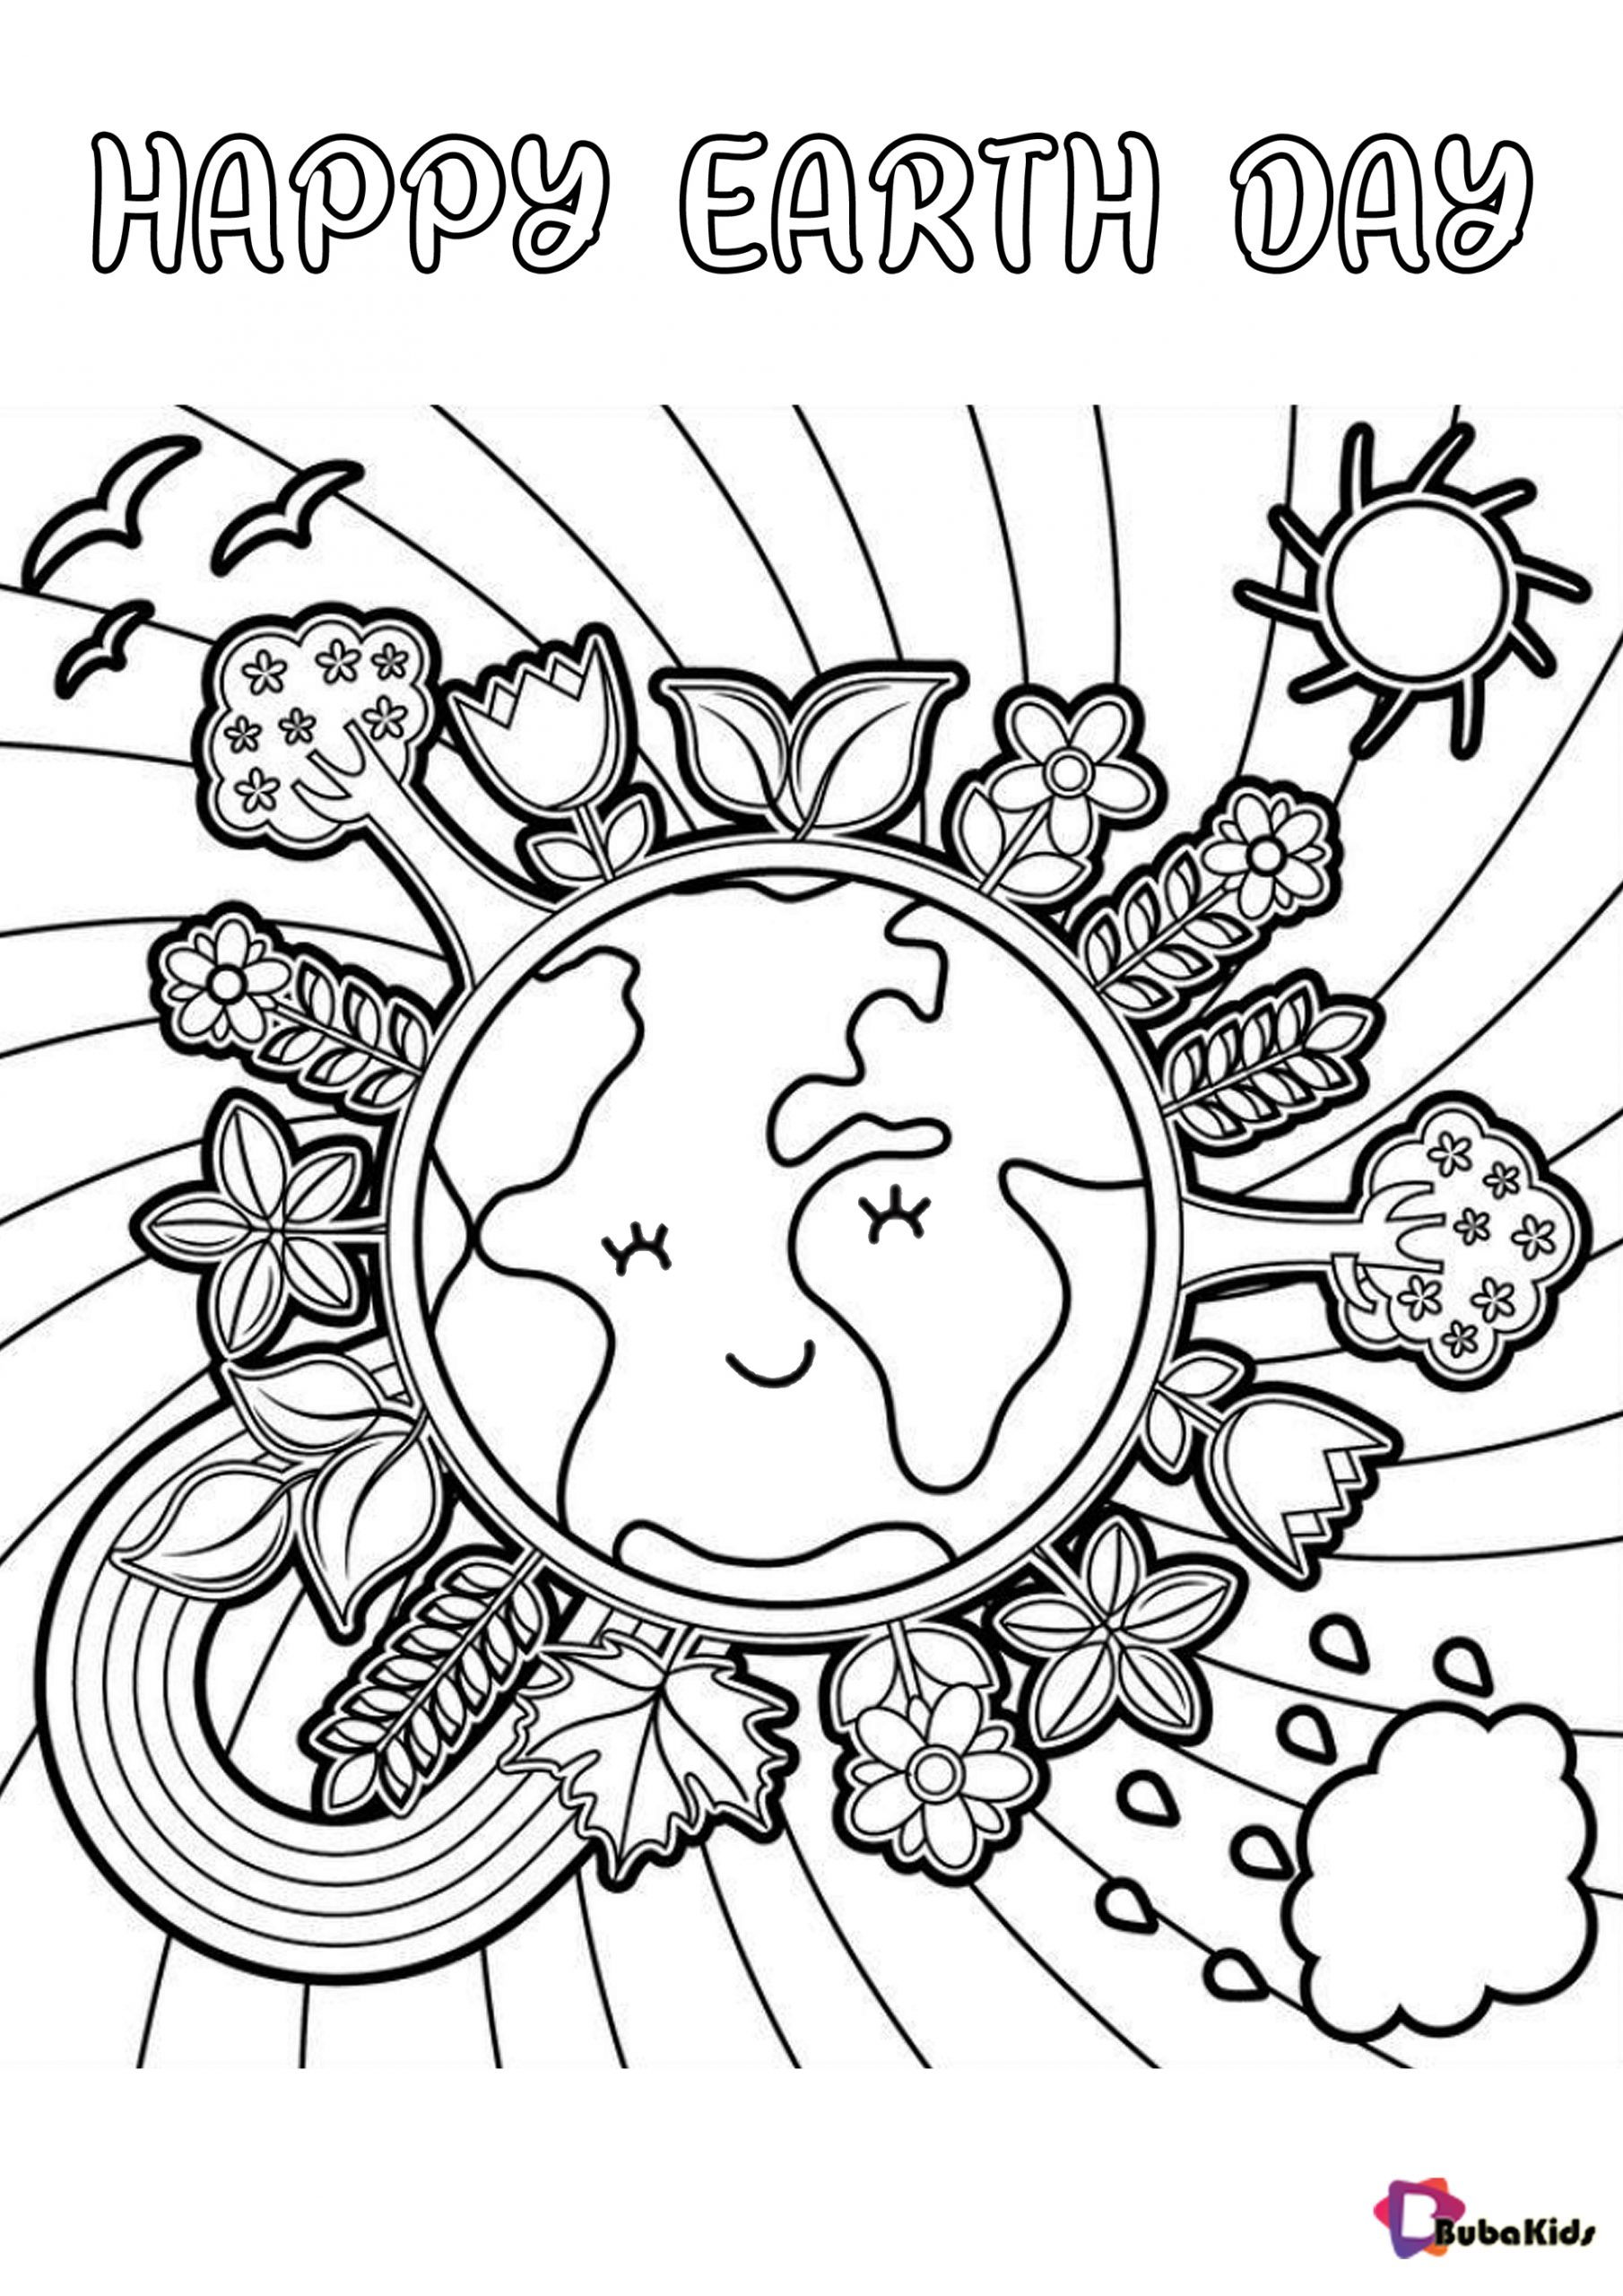 earth day coloring pages 35 free printable earth day coloring pages coloring day pages earth